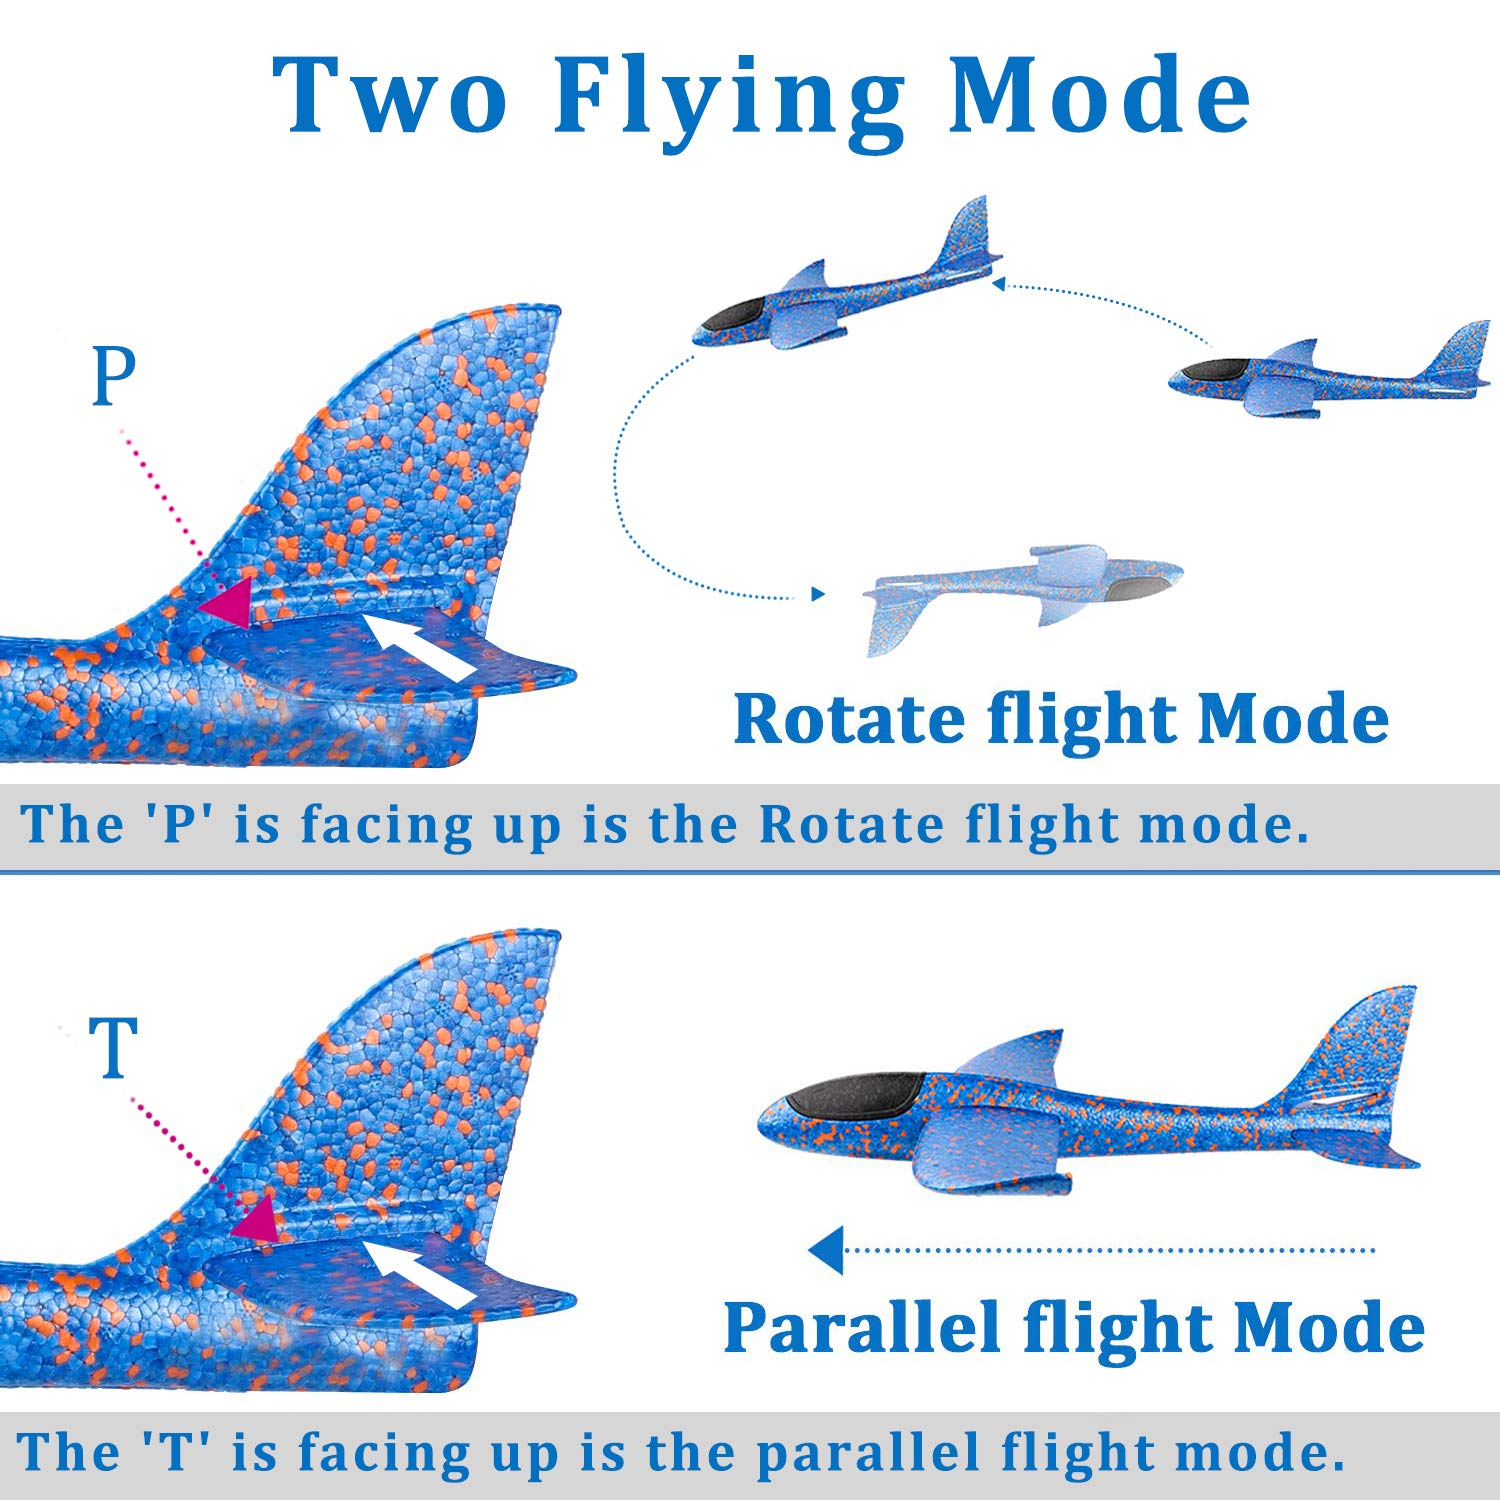 12.5'' Glider Planes,Throwing Foam Airplane ,Dual Flight Mode,Flying Aircraft, Airplane Toy for Kids 3 4 5 6 7 Years Old,Outdoor Sport Game Toys, Boys Girls Flying Party Favors Birthday Gifts by Jupitaz (Image #3)